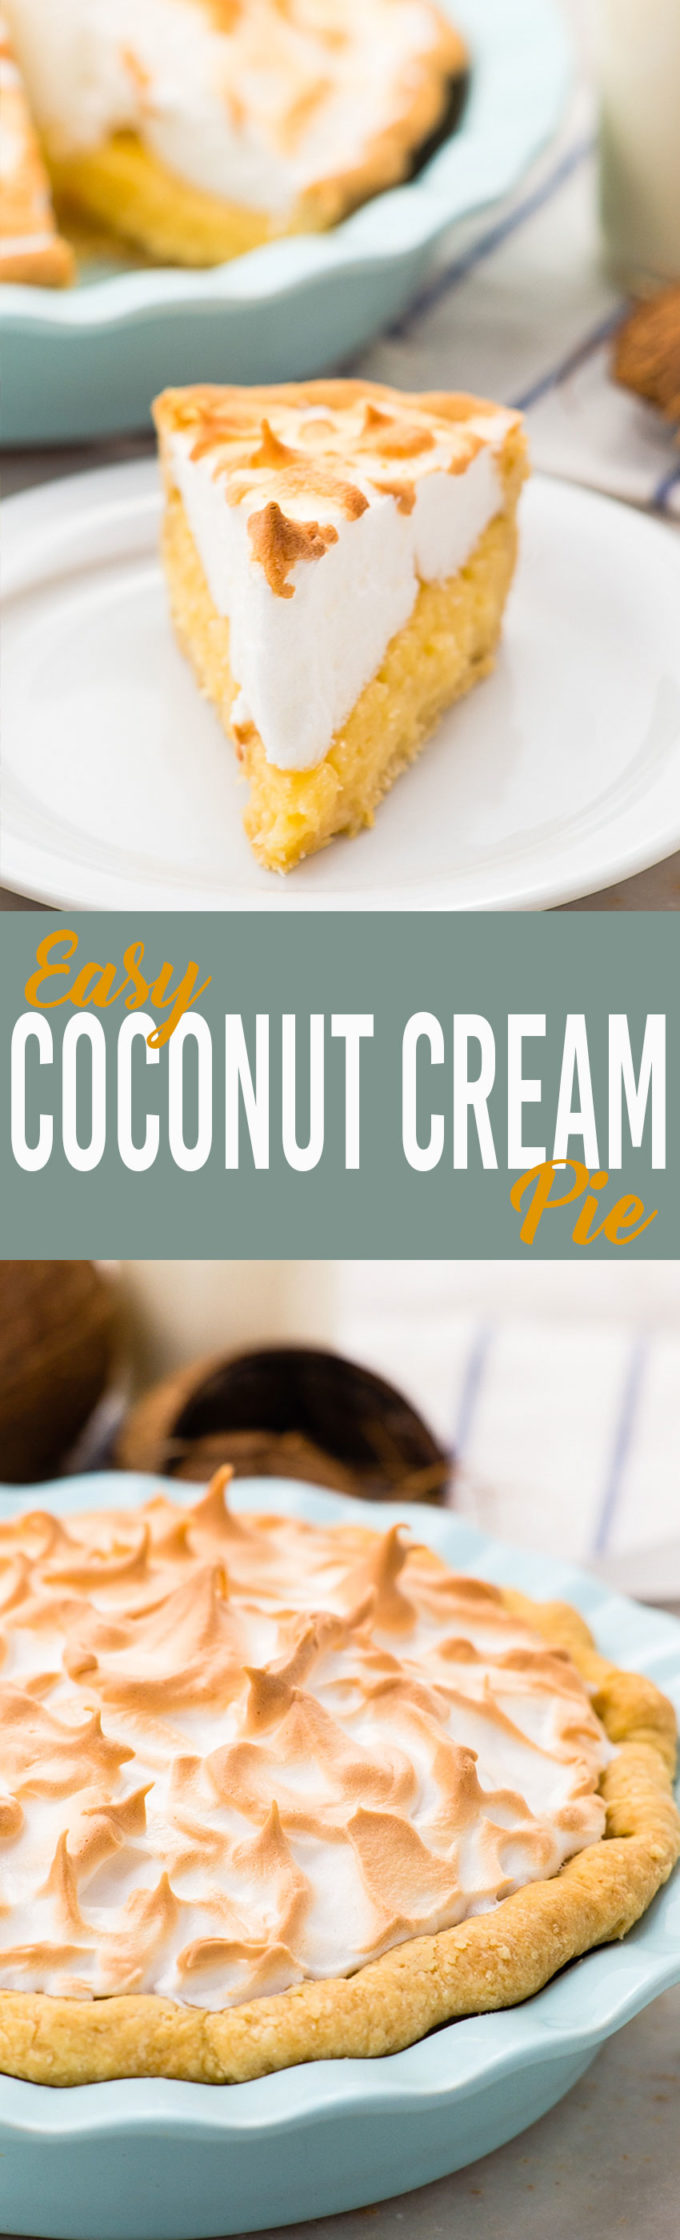 The best ever Coconut Cream Pie, thick rich filling with a delicious meringue on top.